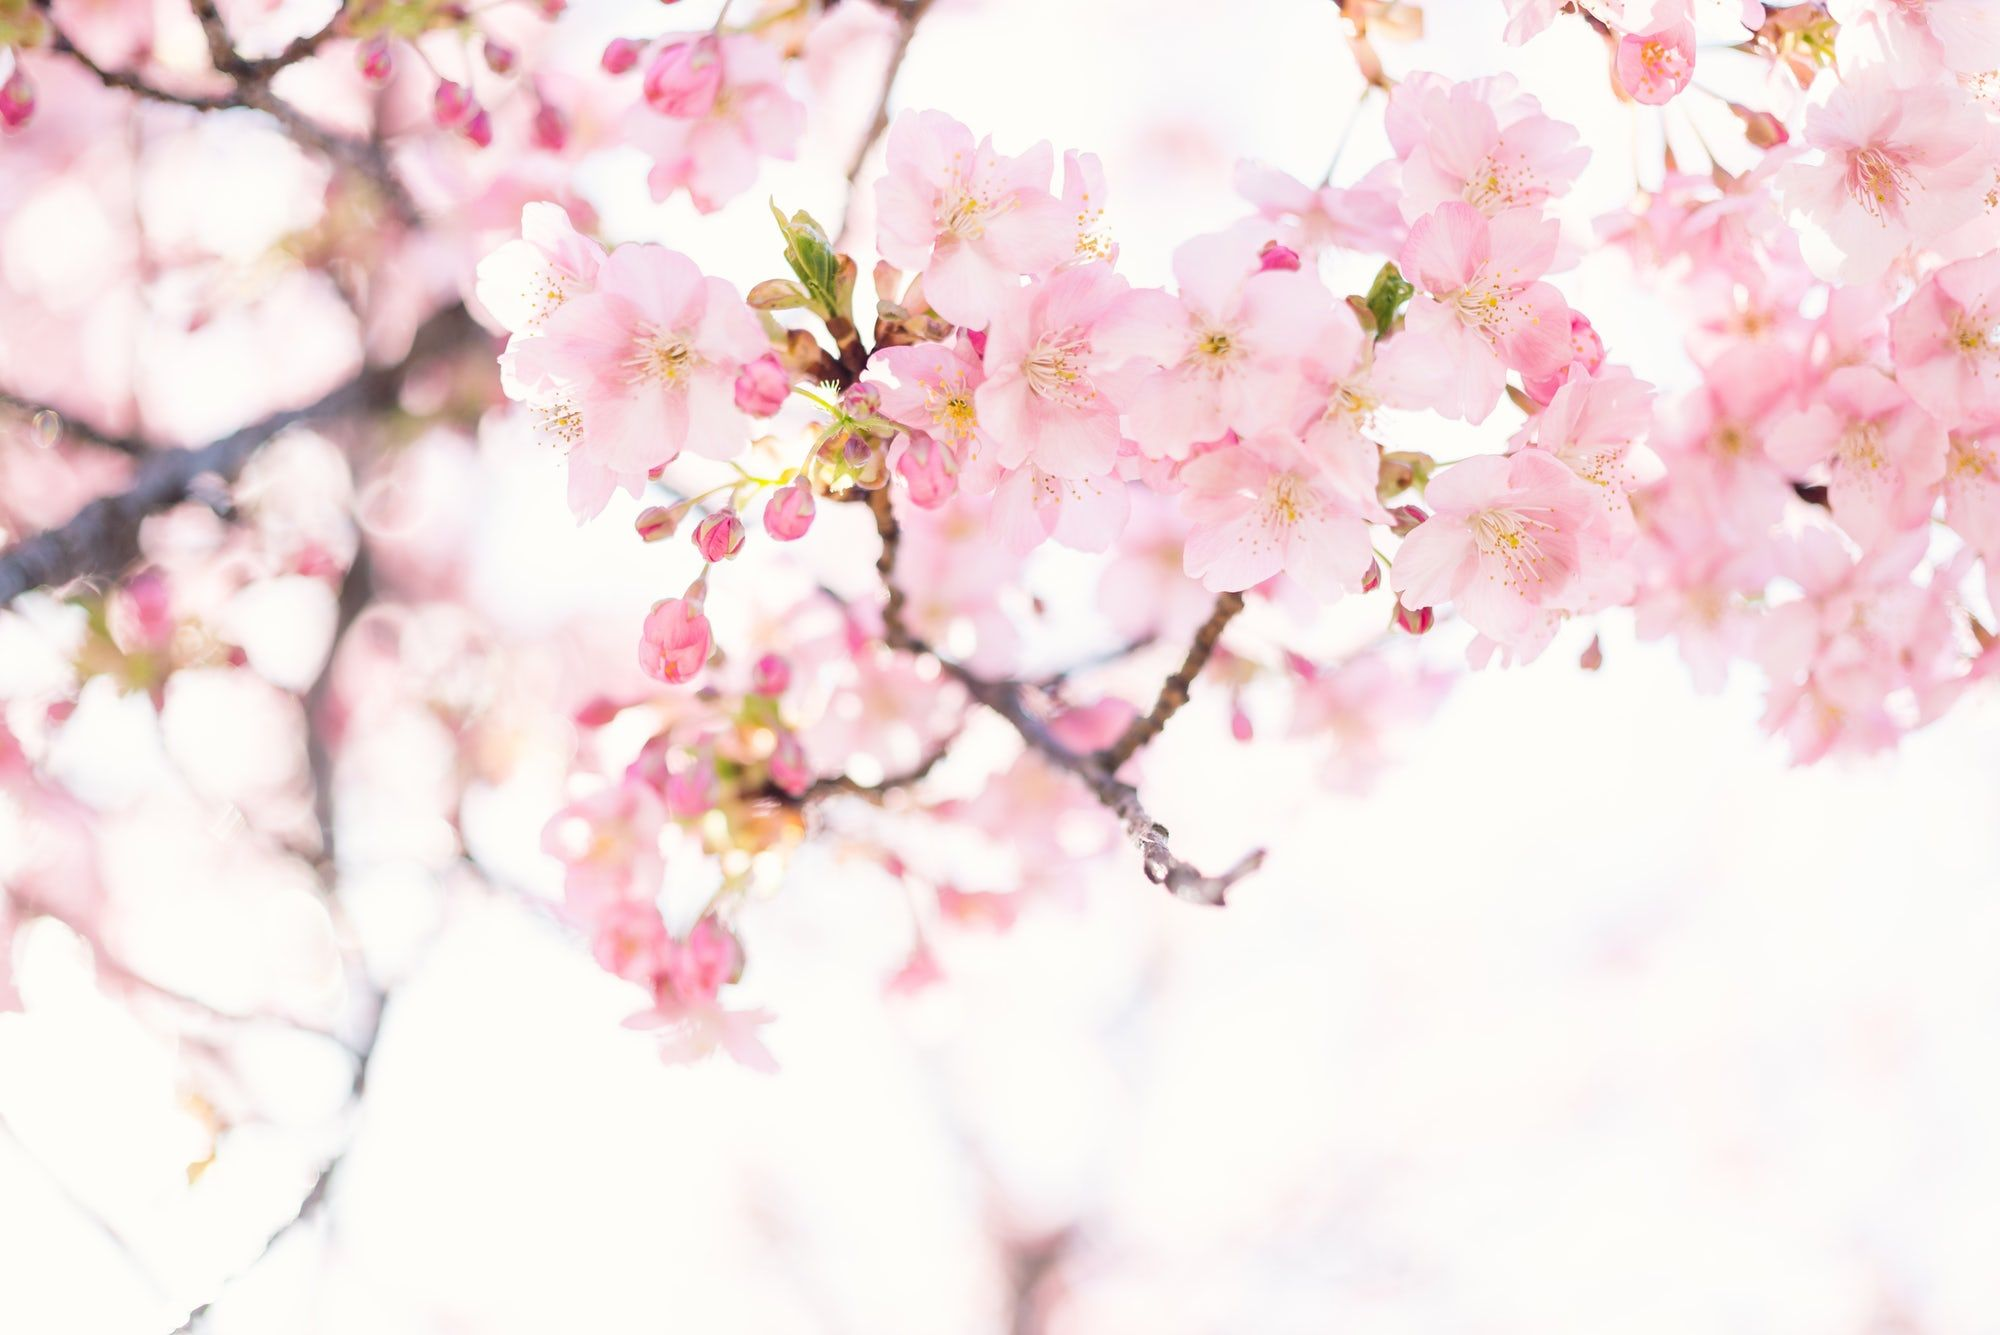 Thanks To Cipher For Making This Photo Available Freely On Unsplash Cherry Blossom Pictures Cherry Blossom Images Cherry Blossom Flowers